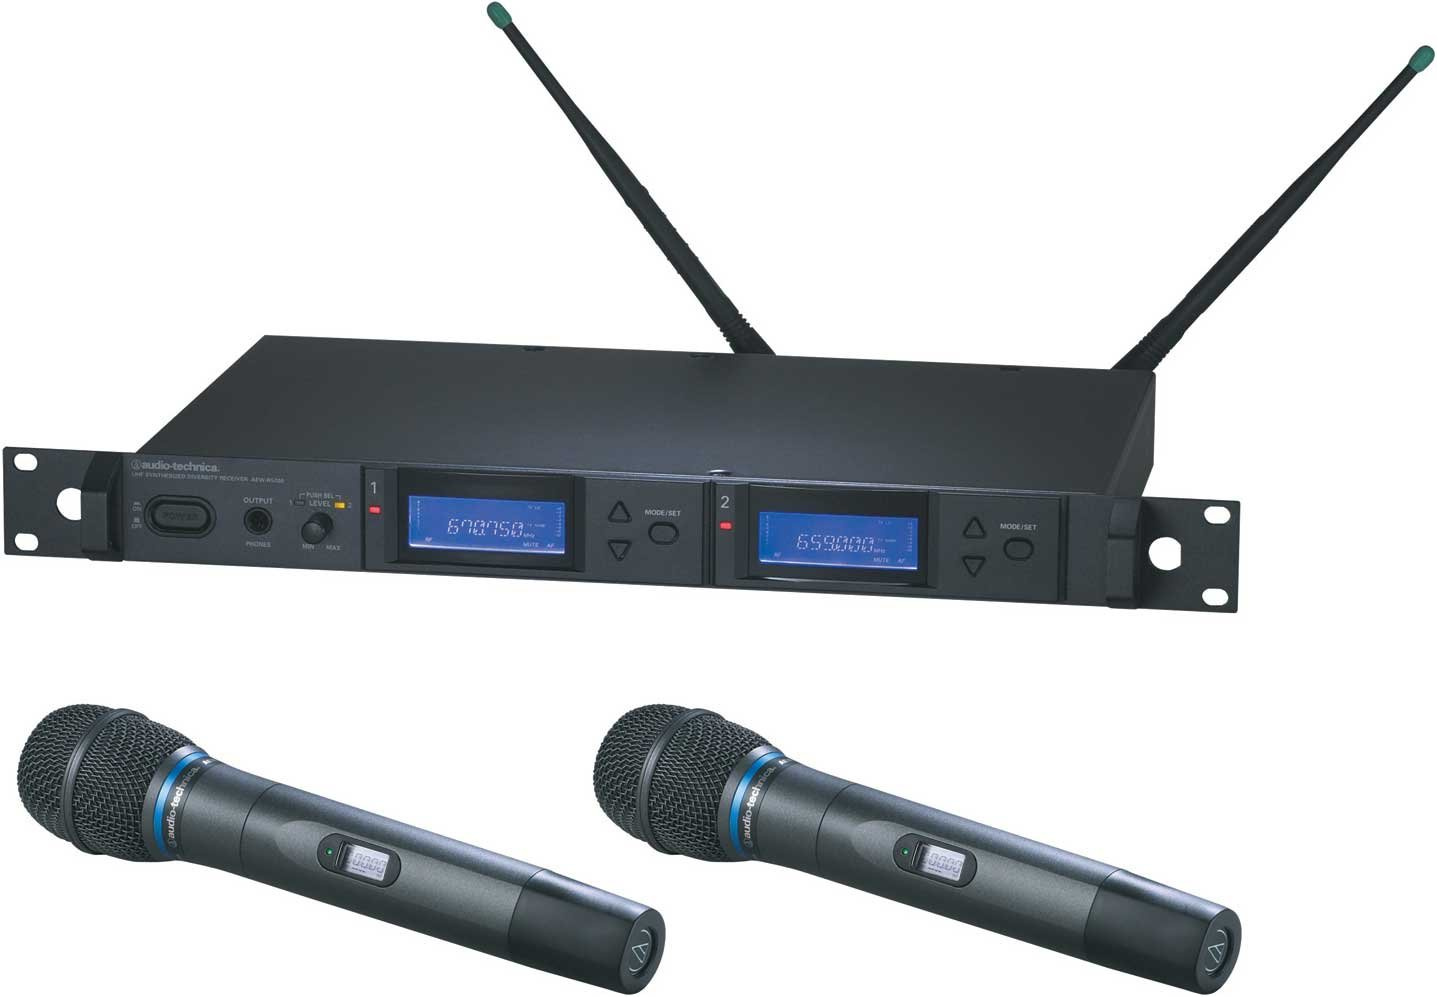 Dual Wireless Microphone Handheld System with 2 x AEW-T3300a Cardioid Condenser Mics, UHF Band C: 541.500 MHz to 566.375 MHz